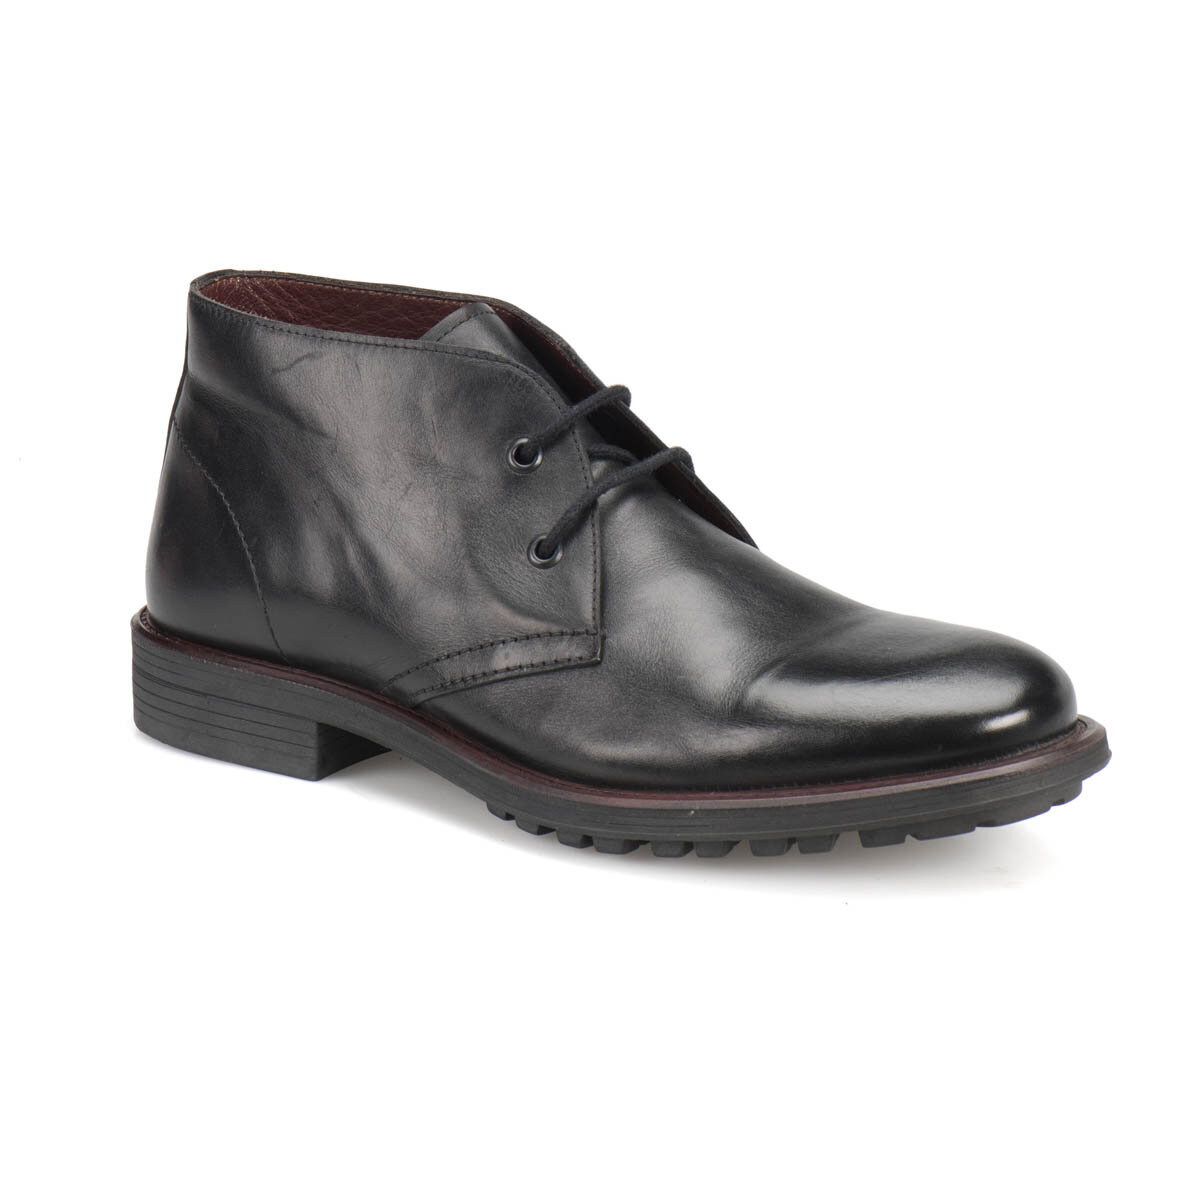 FLO 49364-2 Black Men Boots Garamond